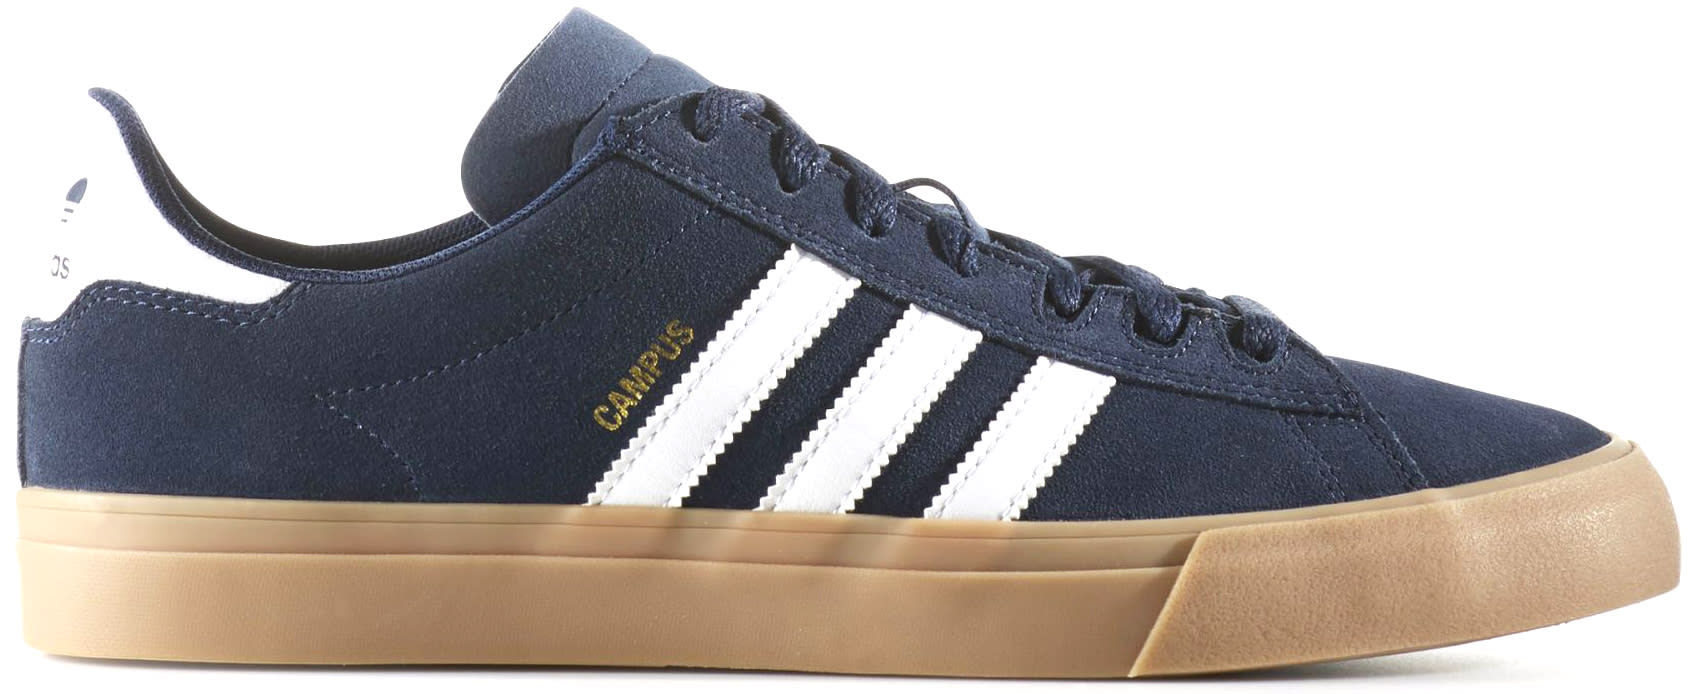 low priced 3fcbb 9e3d5 ... get adidas campus vulc ii adv skate shoes thumbnail 1 e0f40 fb40d